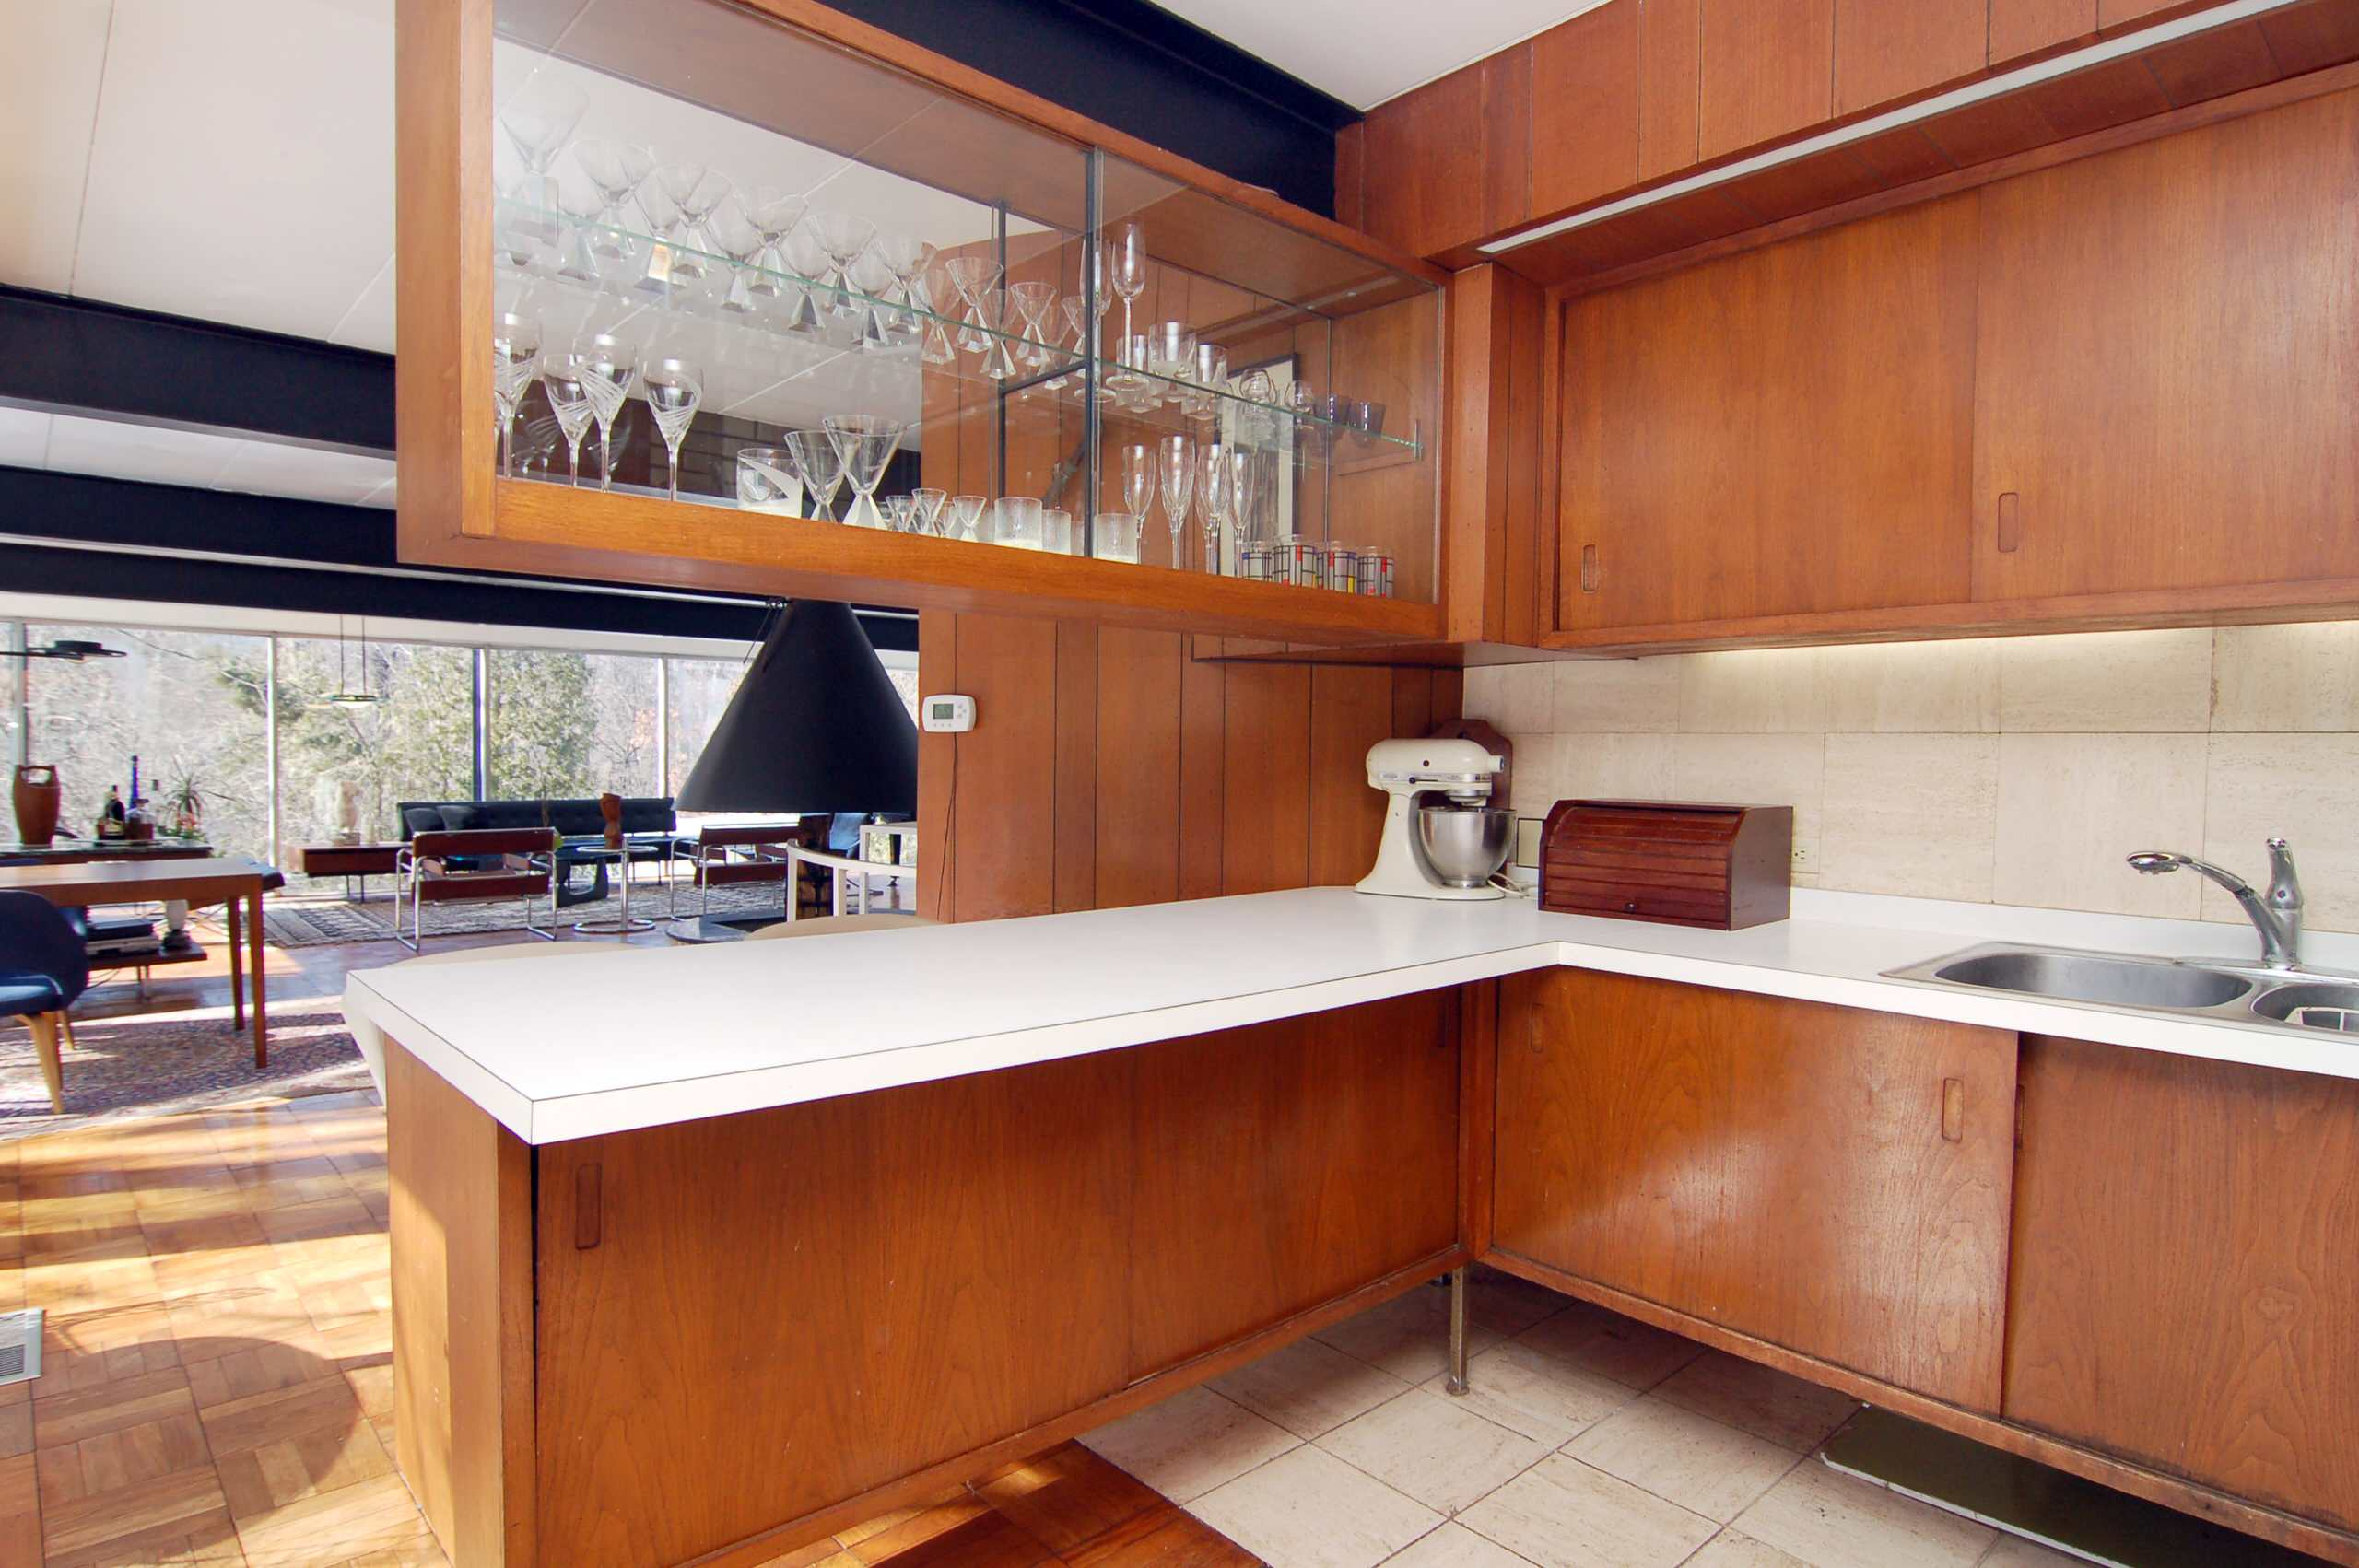 Upper Kitchen Cabinets or Open Shelves for Your Kitchen